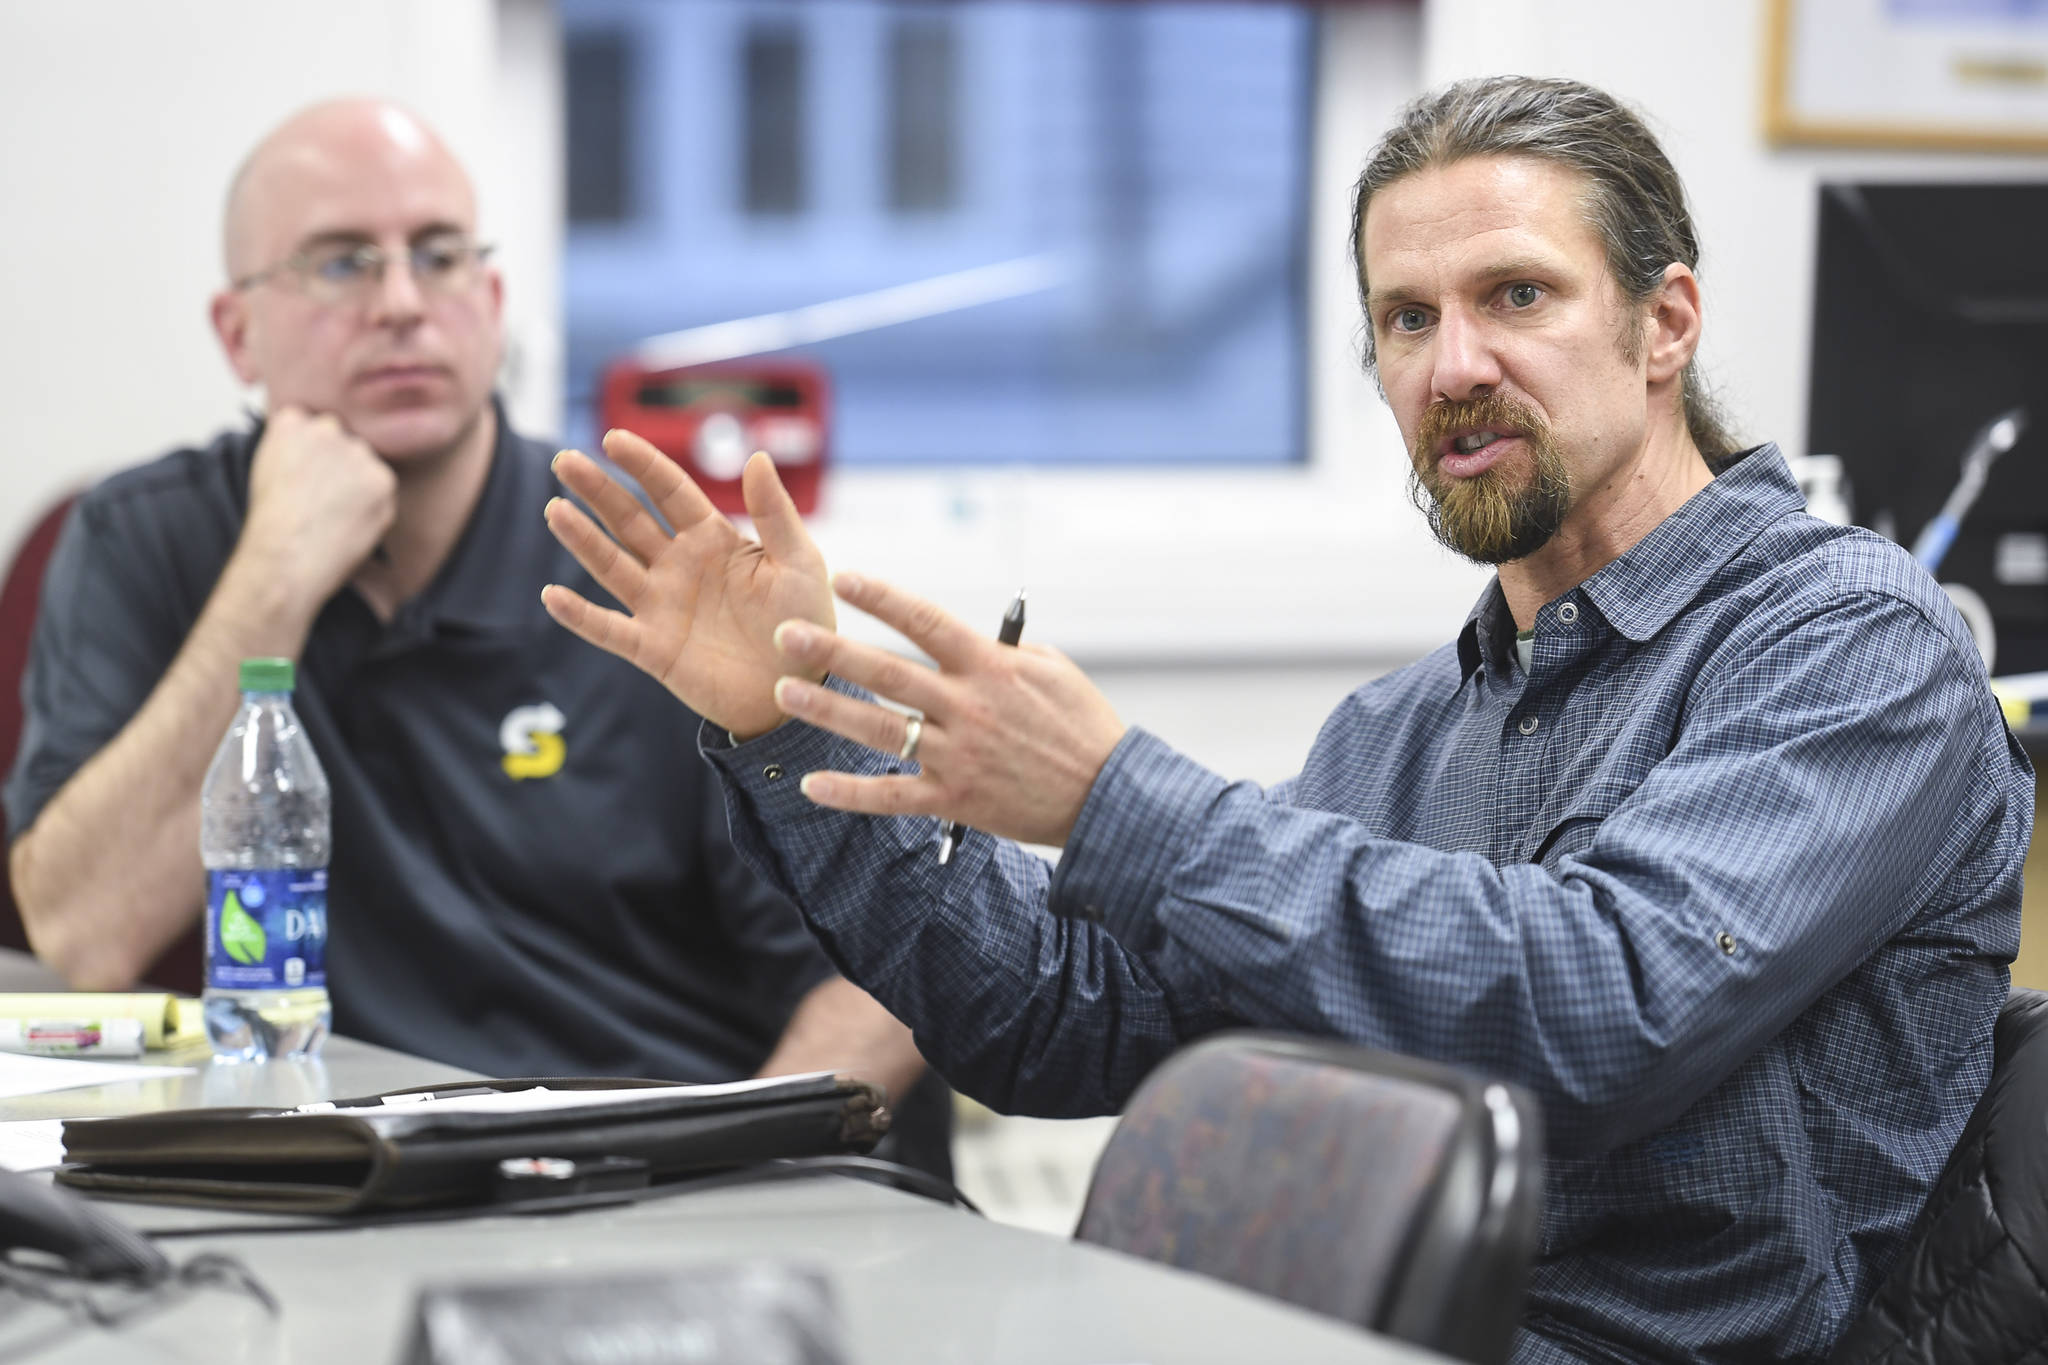 Eaglecrest Ski Area General Manager Dave Scanlan, right, speaks during a task force meeting at City Hall looking into summer activities at the city-owned ski resort on Thursday, Dec. 19, 2019. (Michael Penn | Juneau Empire)